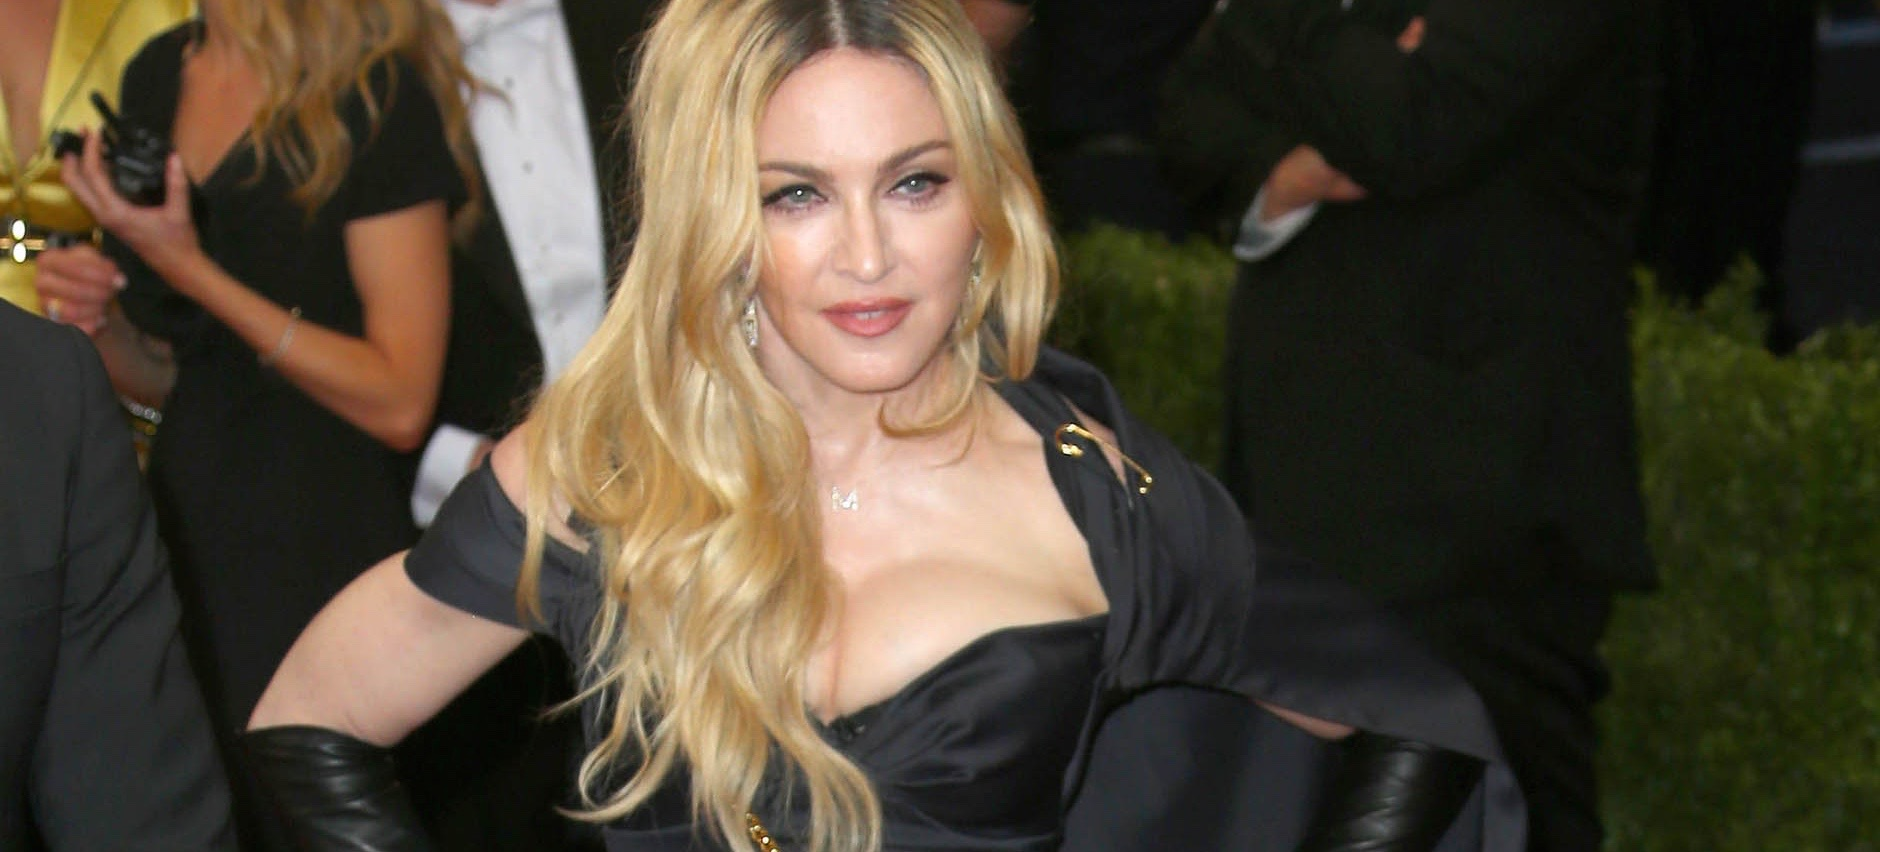 Exclusive: Madonna's Top 5 Do-Anywhere Exercises